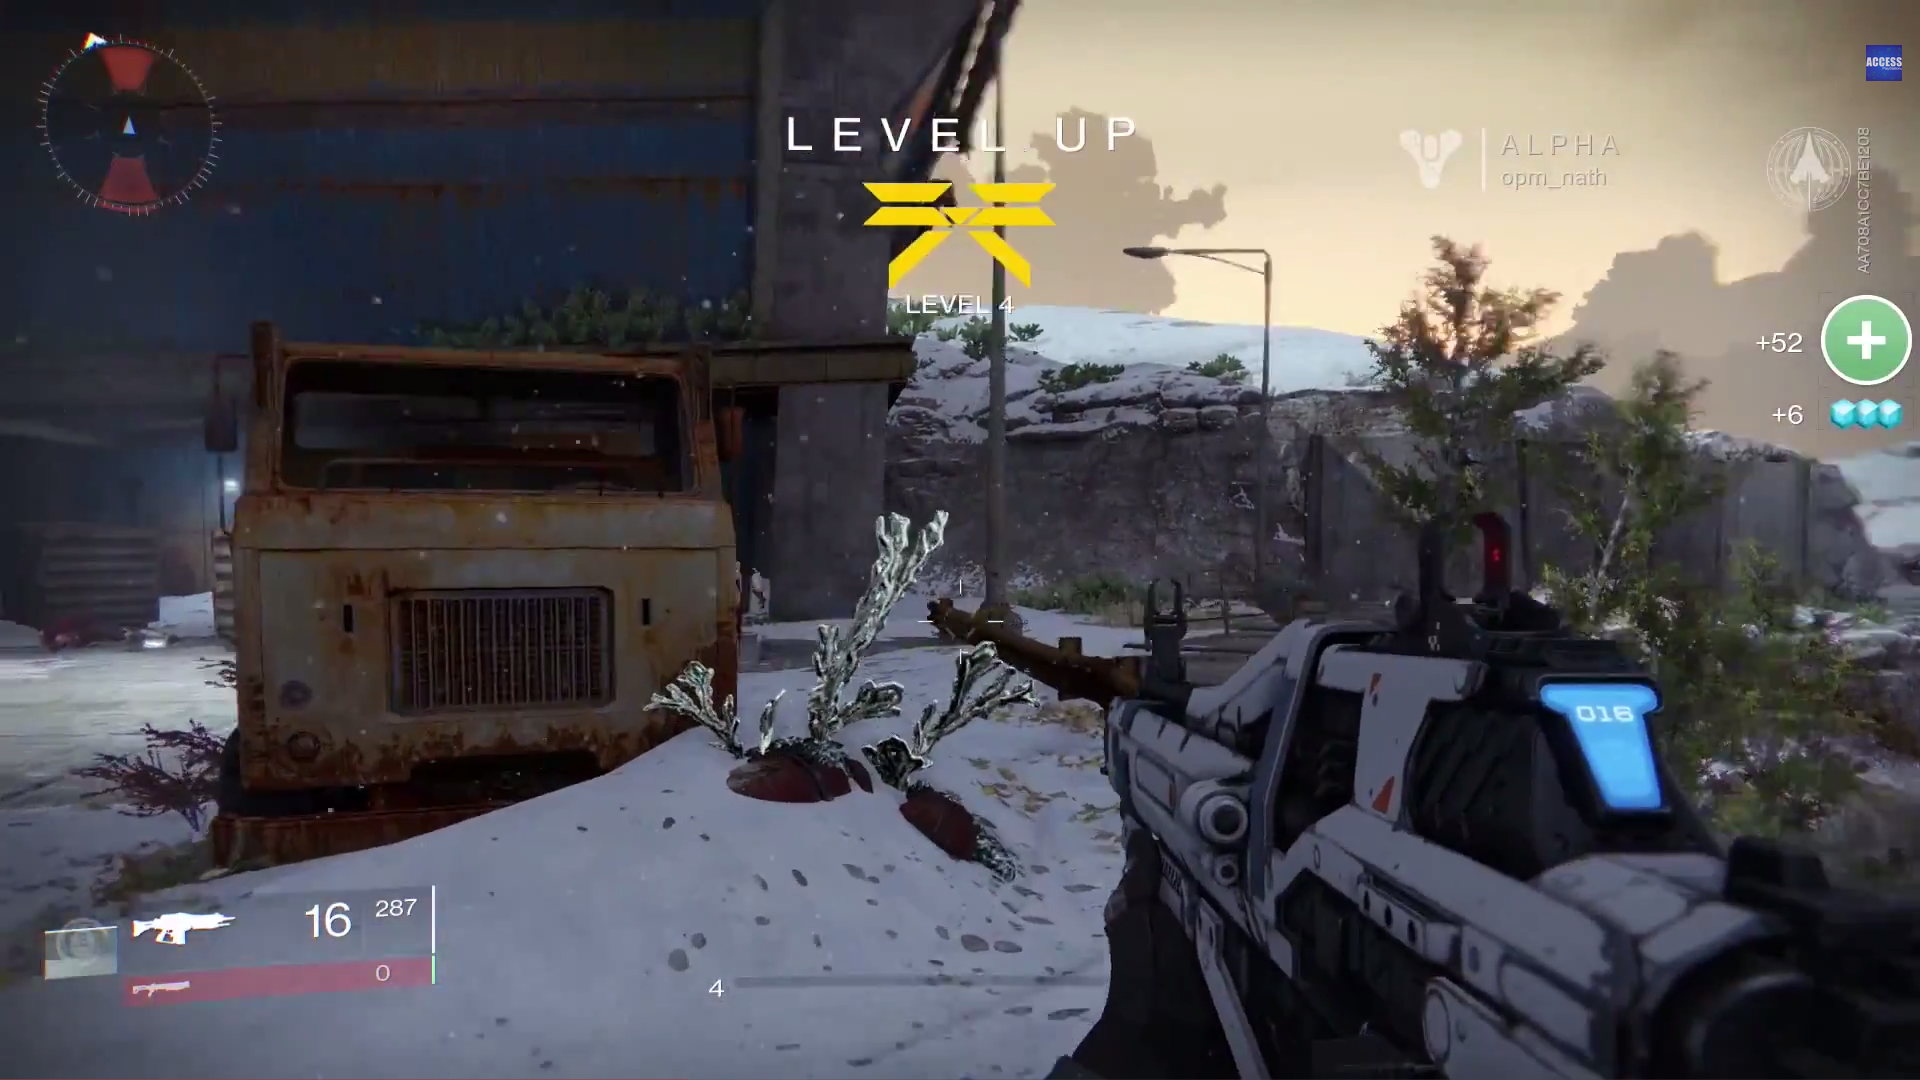 Ps4 Games Science Fiction : Destiny ps game gameplay popup ui interface flat